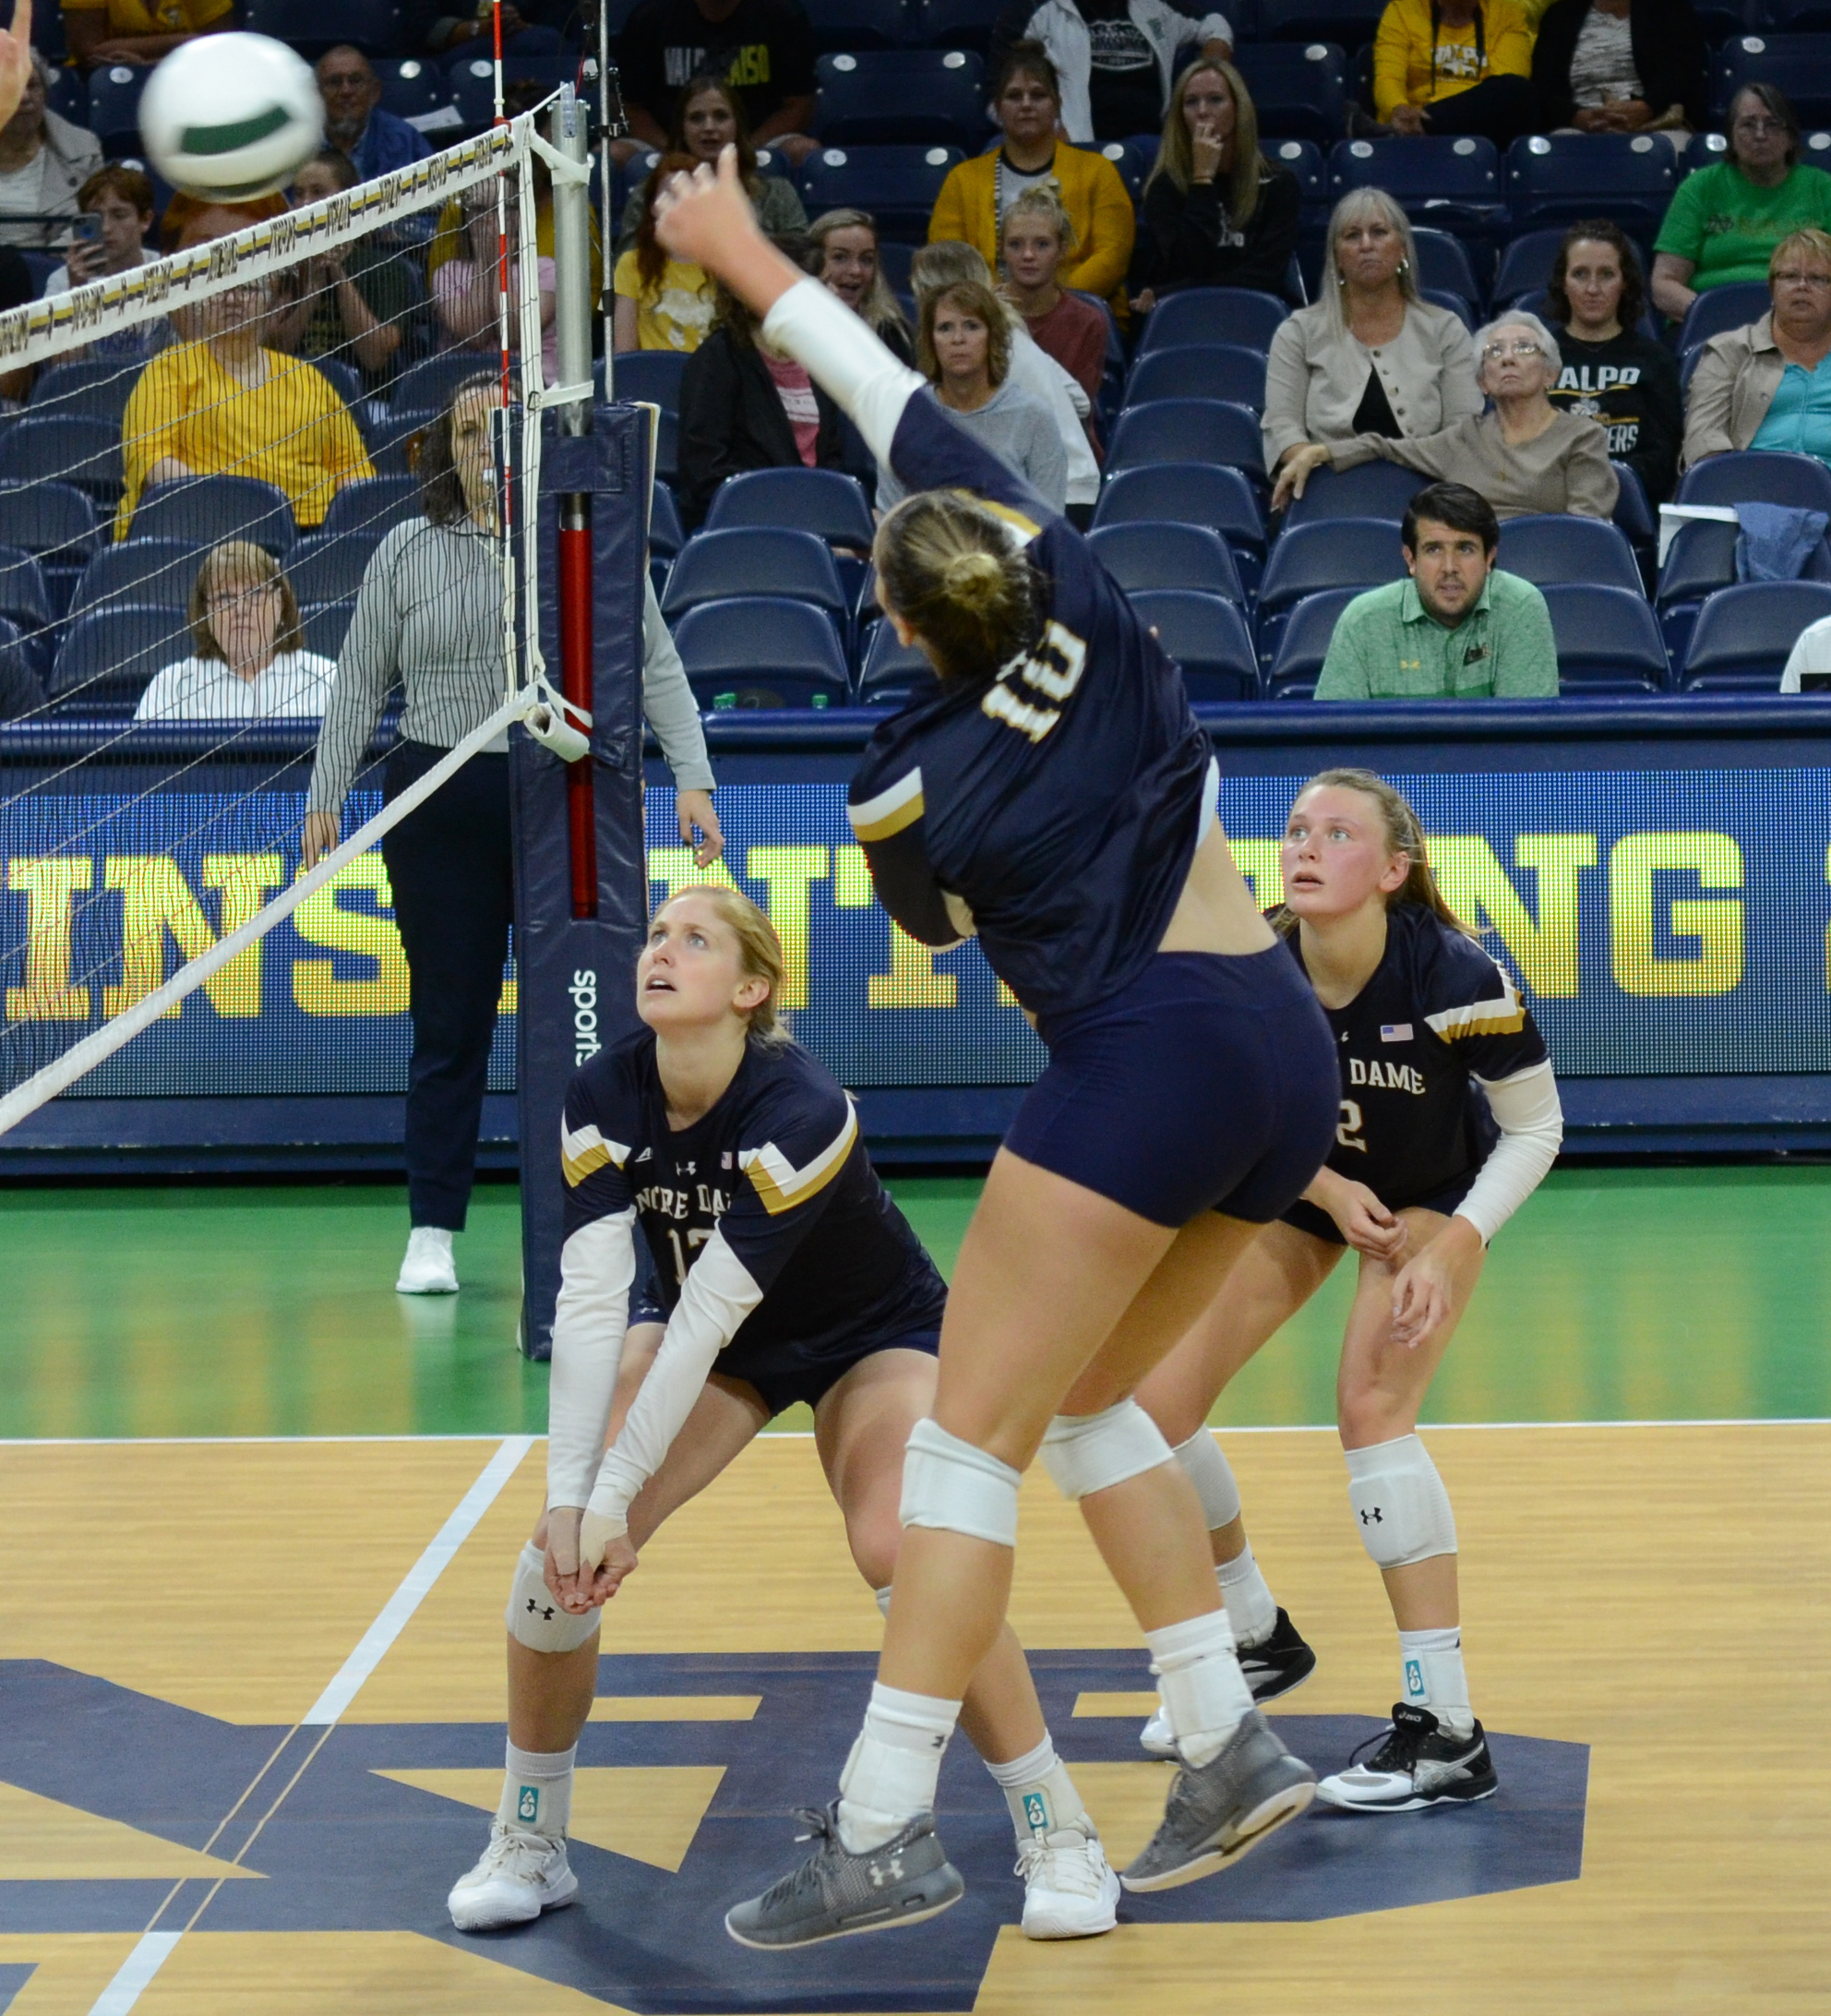 Irish look to continue dominance in ACC this weekend